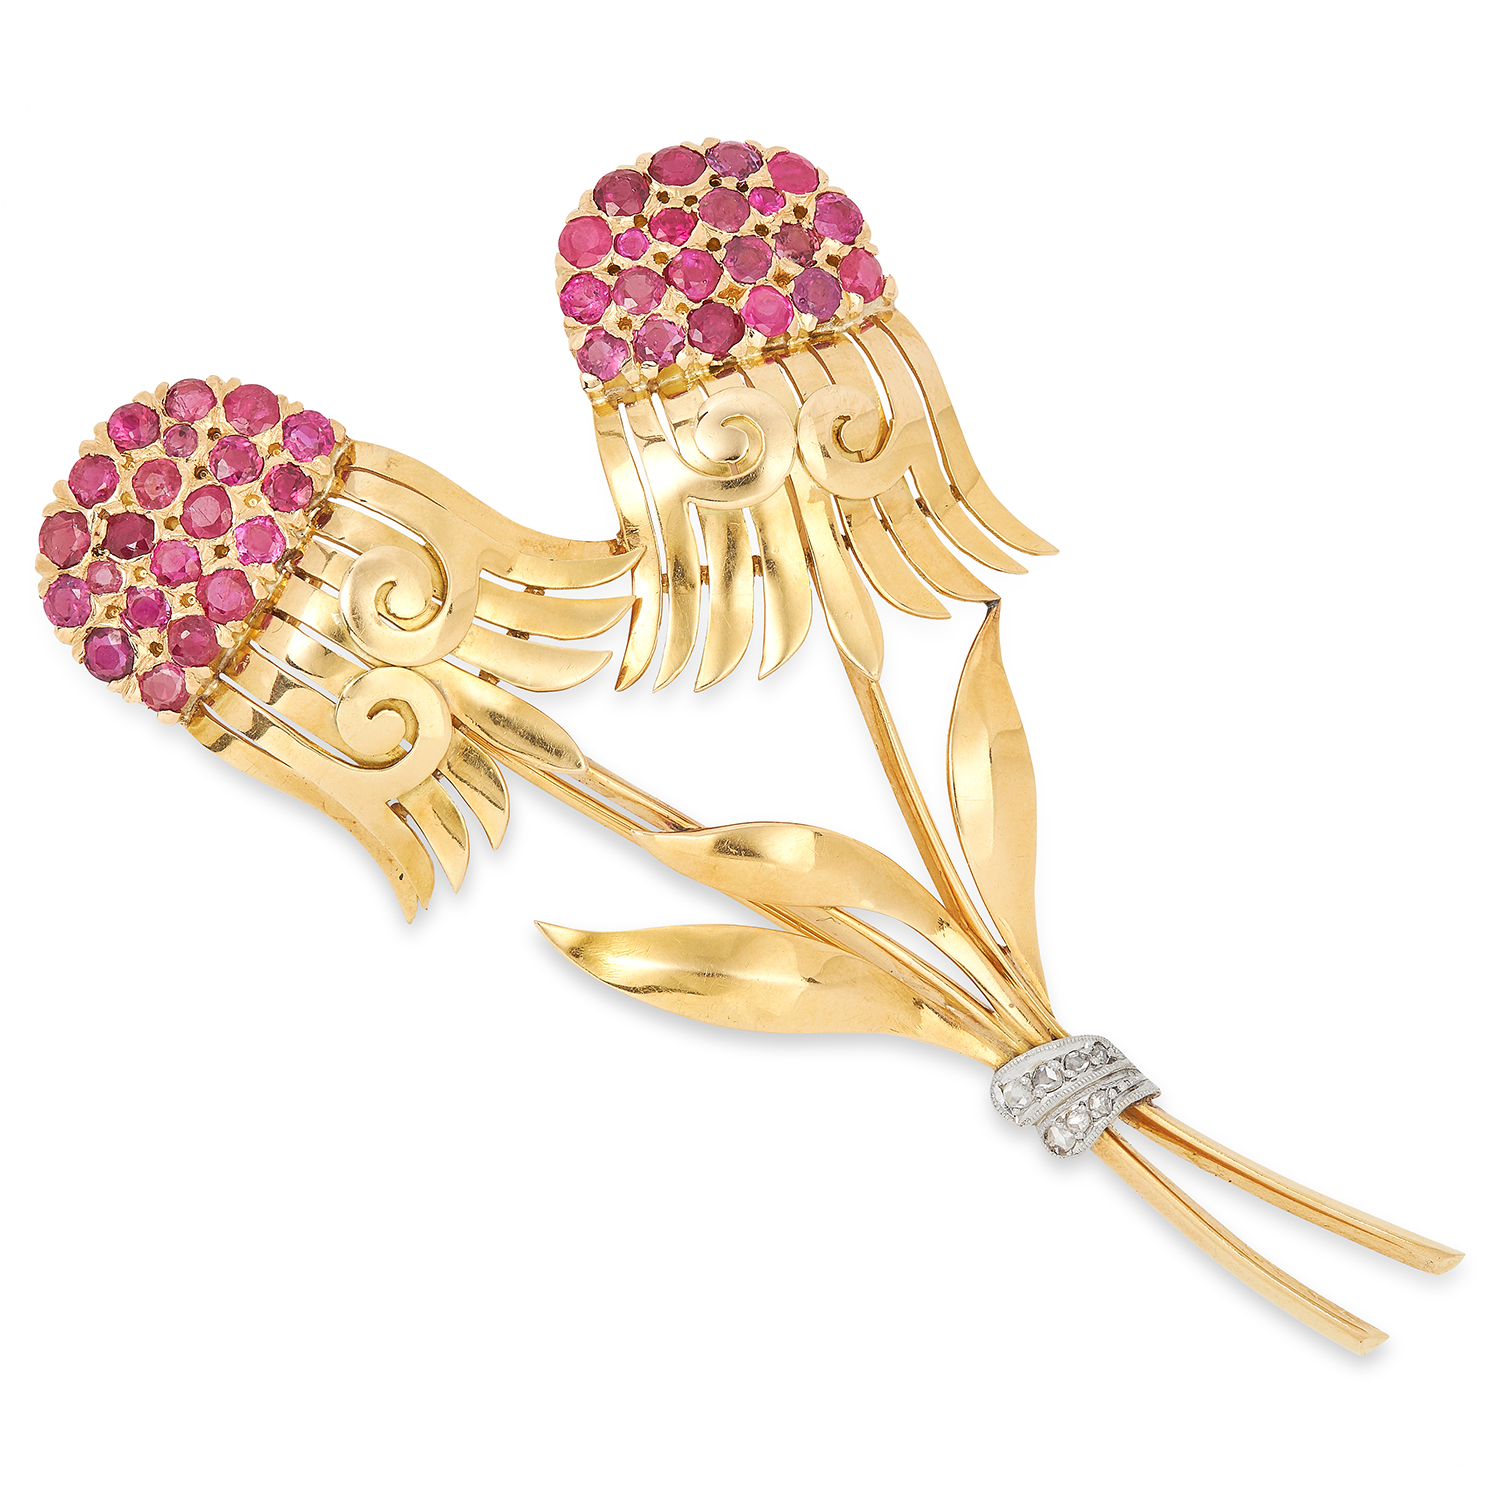 Los 35 - VINTAGE RUBY AND DIAMOND FLOWER SPRAY BROOCH set with round cut rubies and rose cut diamonds, 9.1cm,